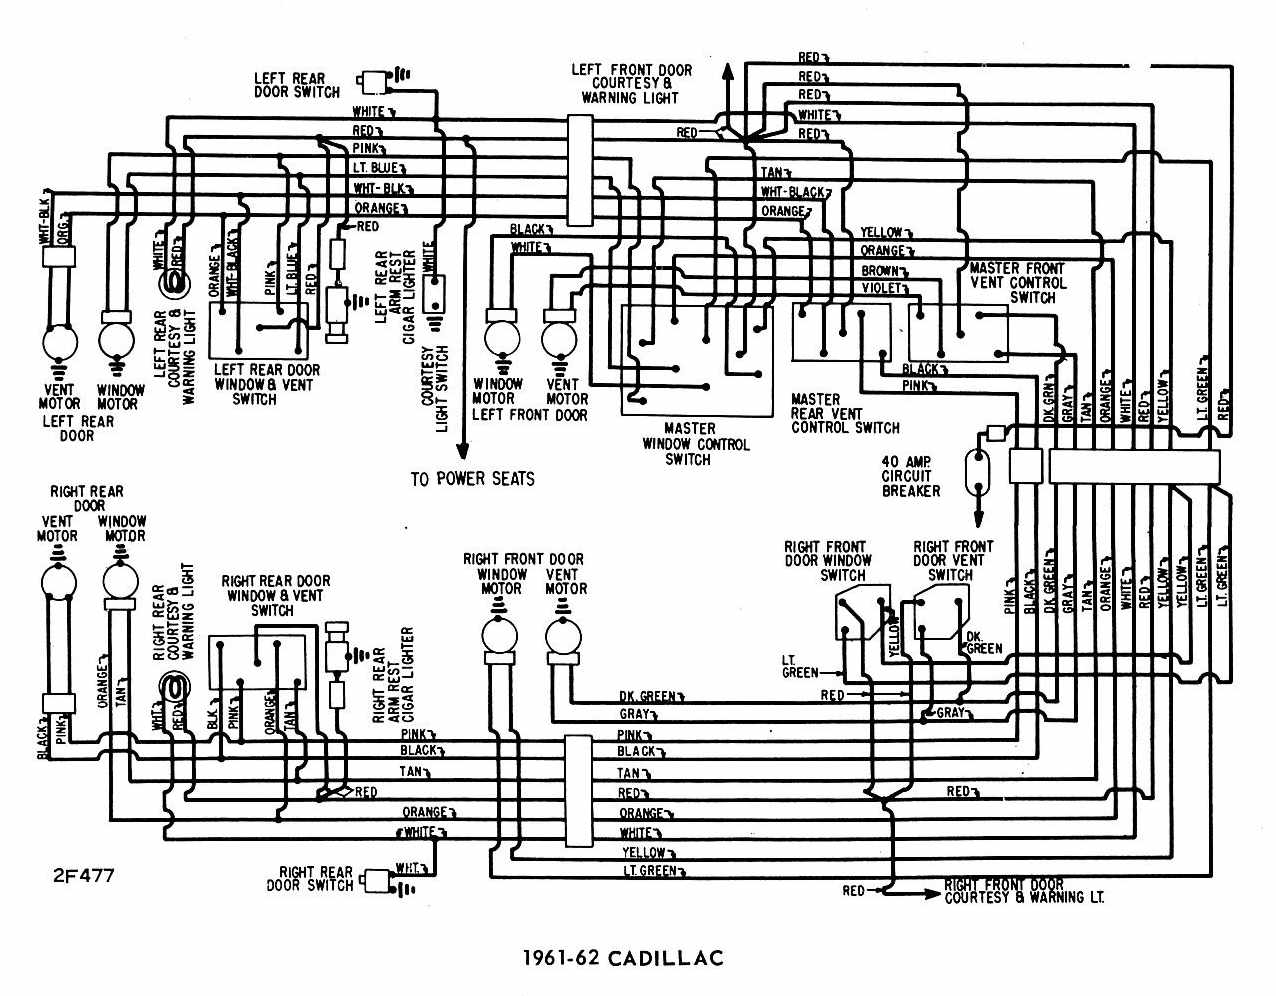 Cadillac Car Manuals Wiring Diagrams Pdf Fault Codes 1983 Free Download